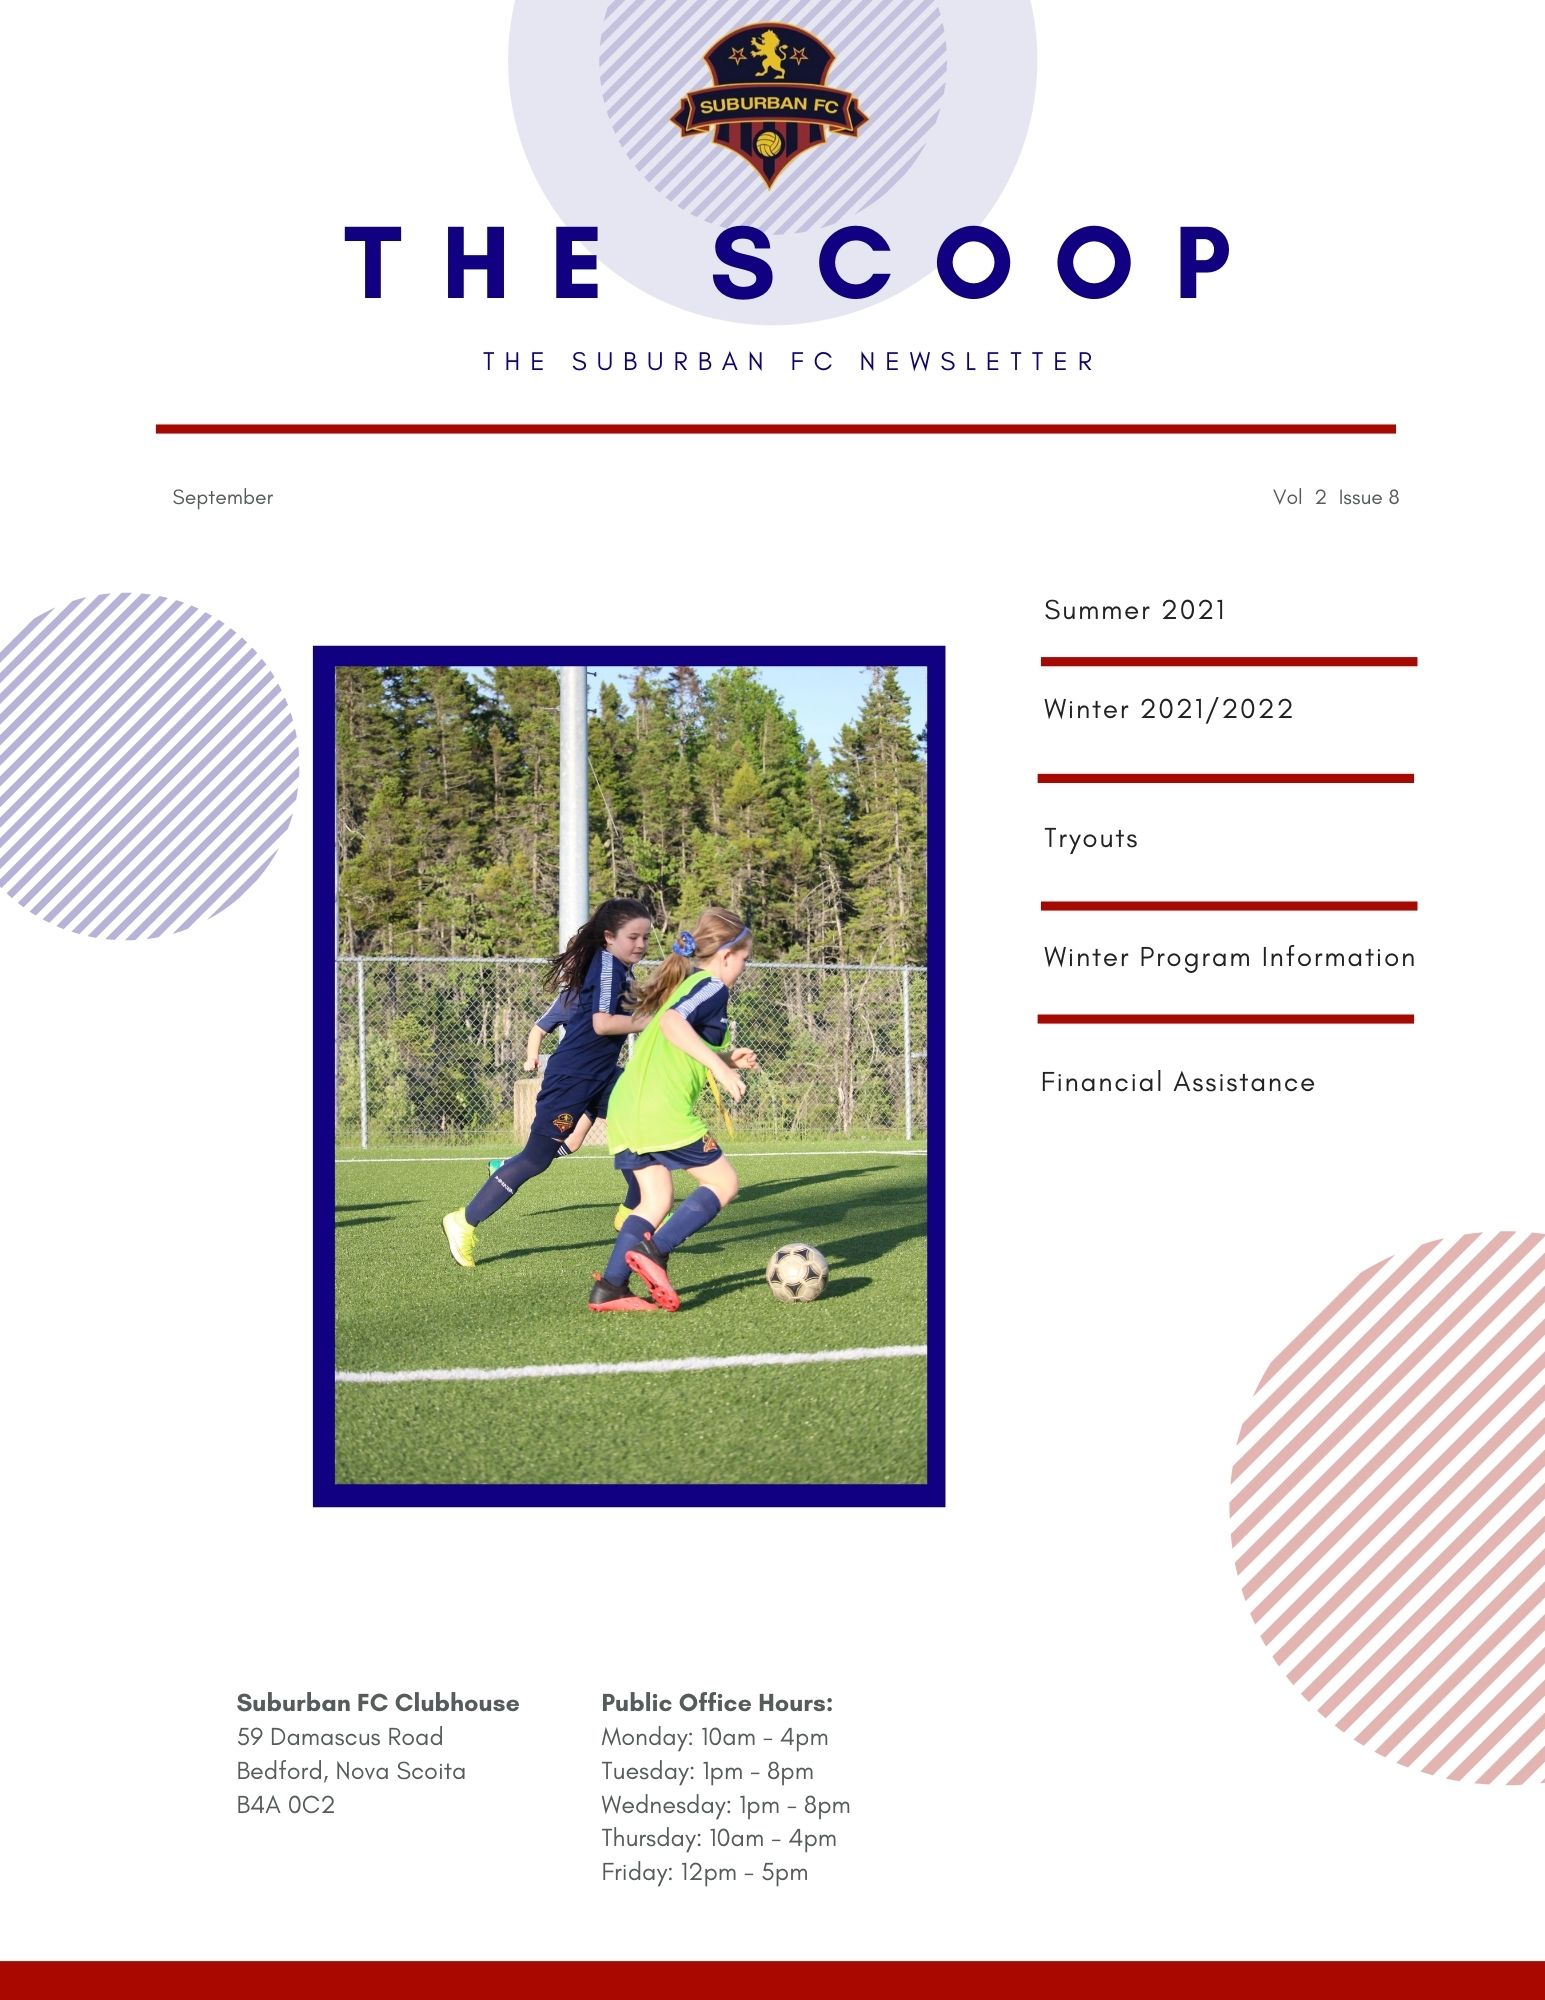 The Scoop - September Edition